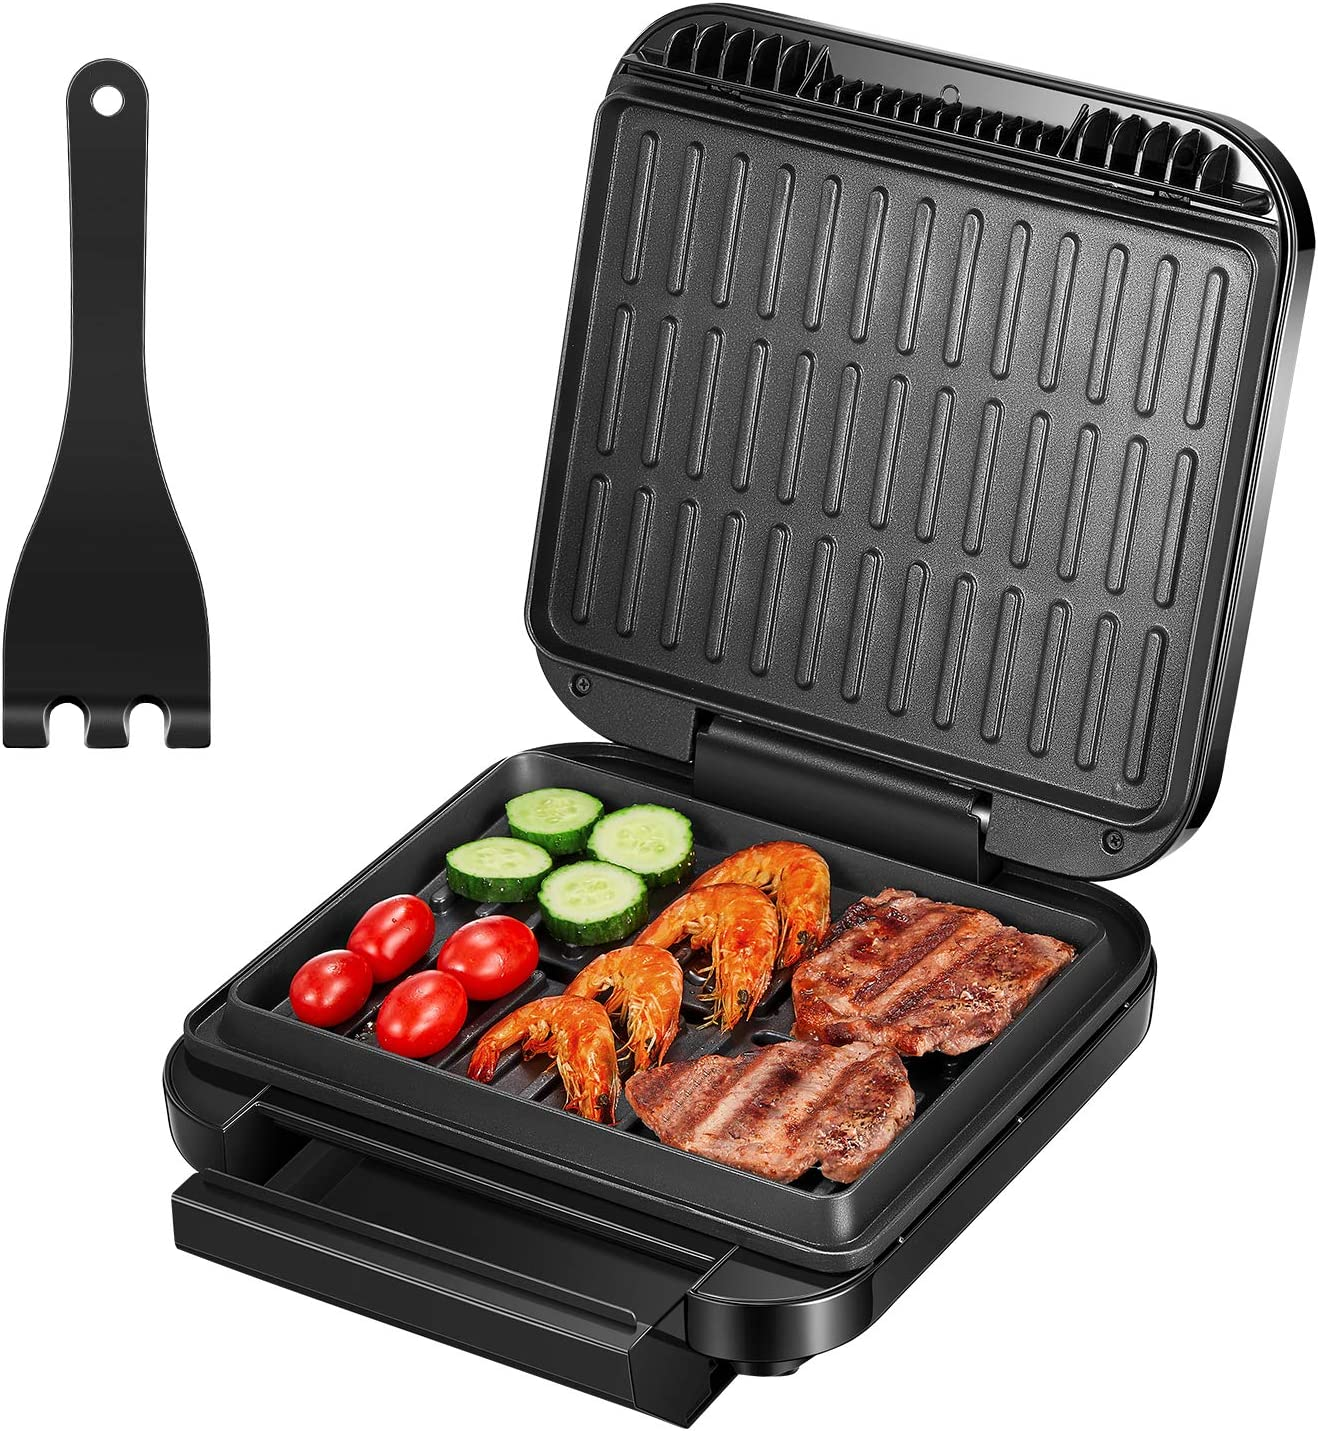 Deik 2-in-1 Electric Indoor Grill and Panini Press Grill. Best New Small Kitchen Appliances — Reviewing Indoor Grills